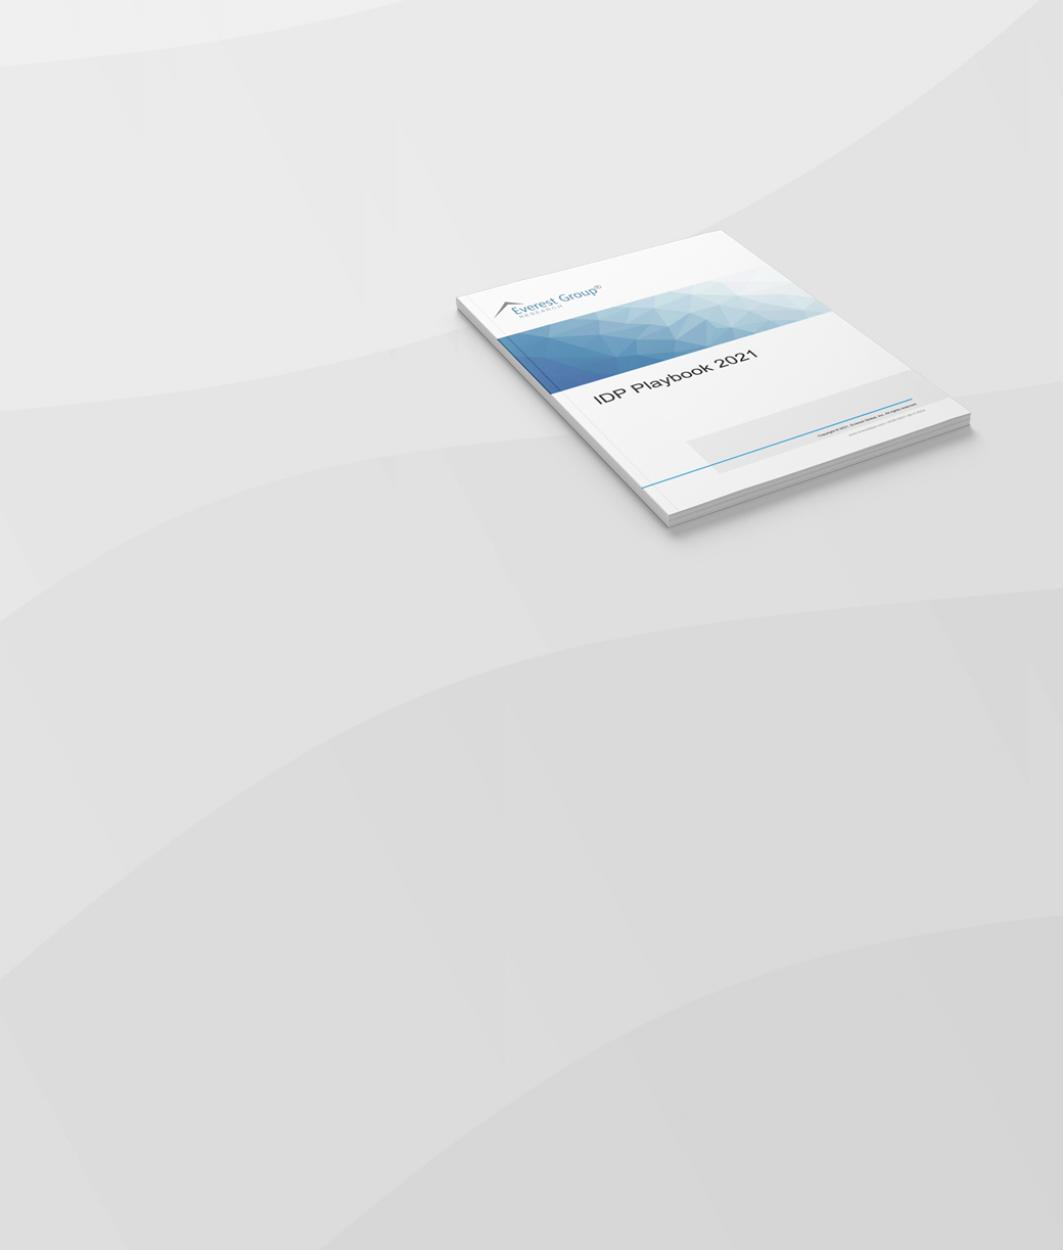 IDP-Playbook-2021-Home-Page- Slider-AntWorks-Automation